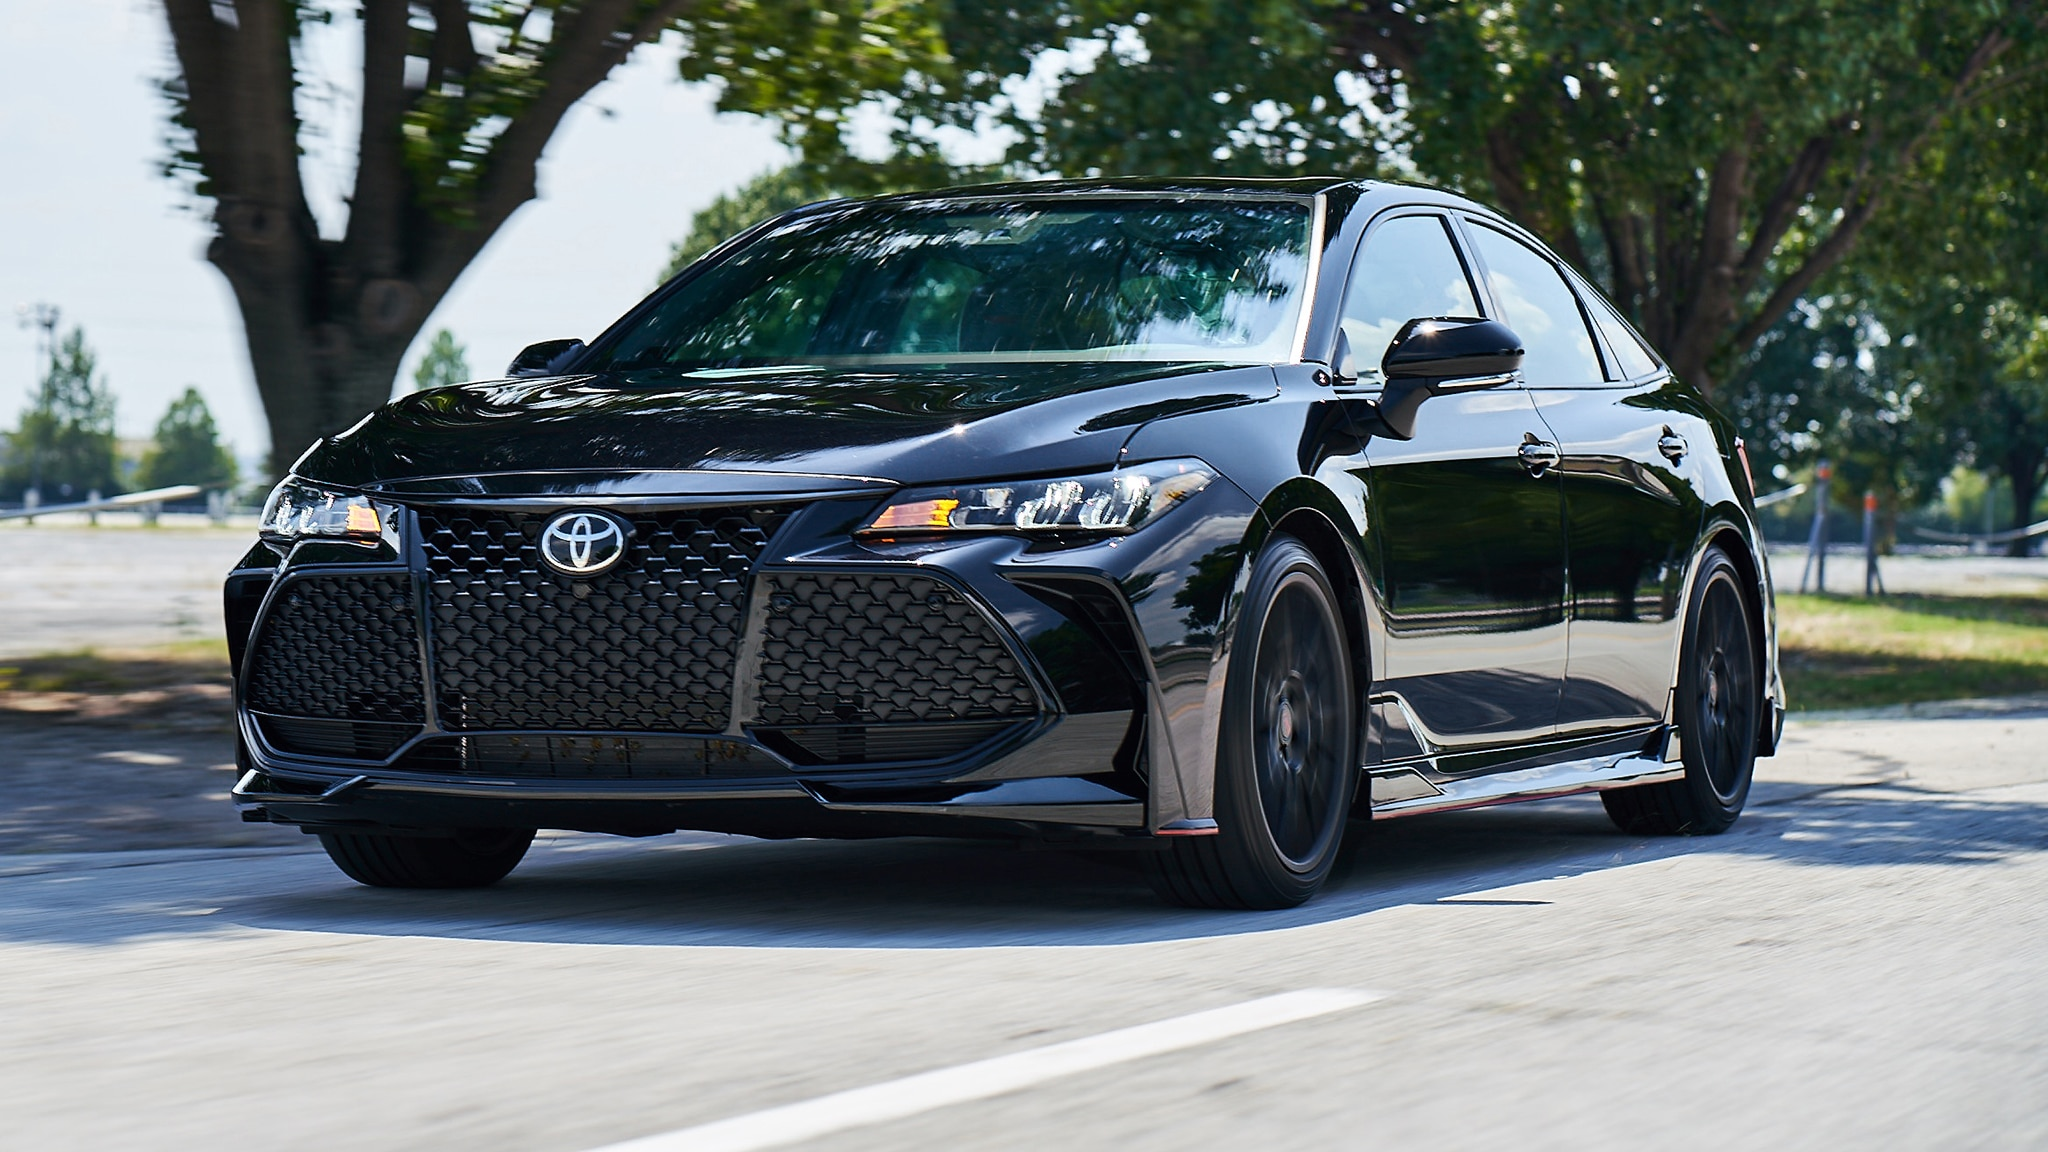 2020 Toyota Avalon TRD: Sure, Why Not? | Automobile Magazine